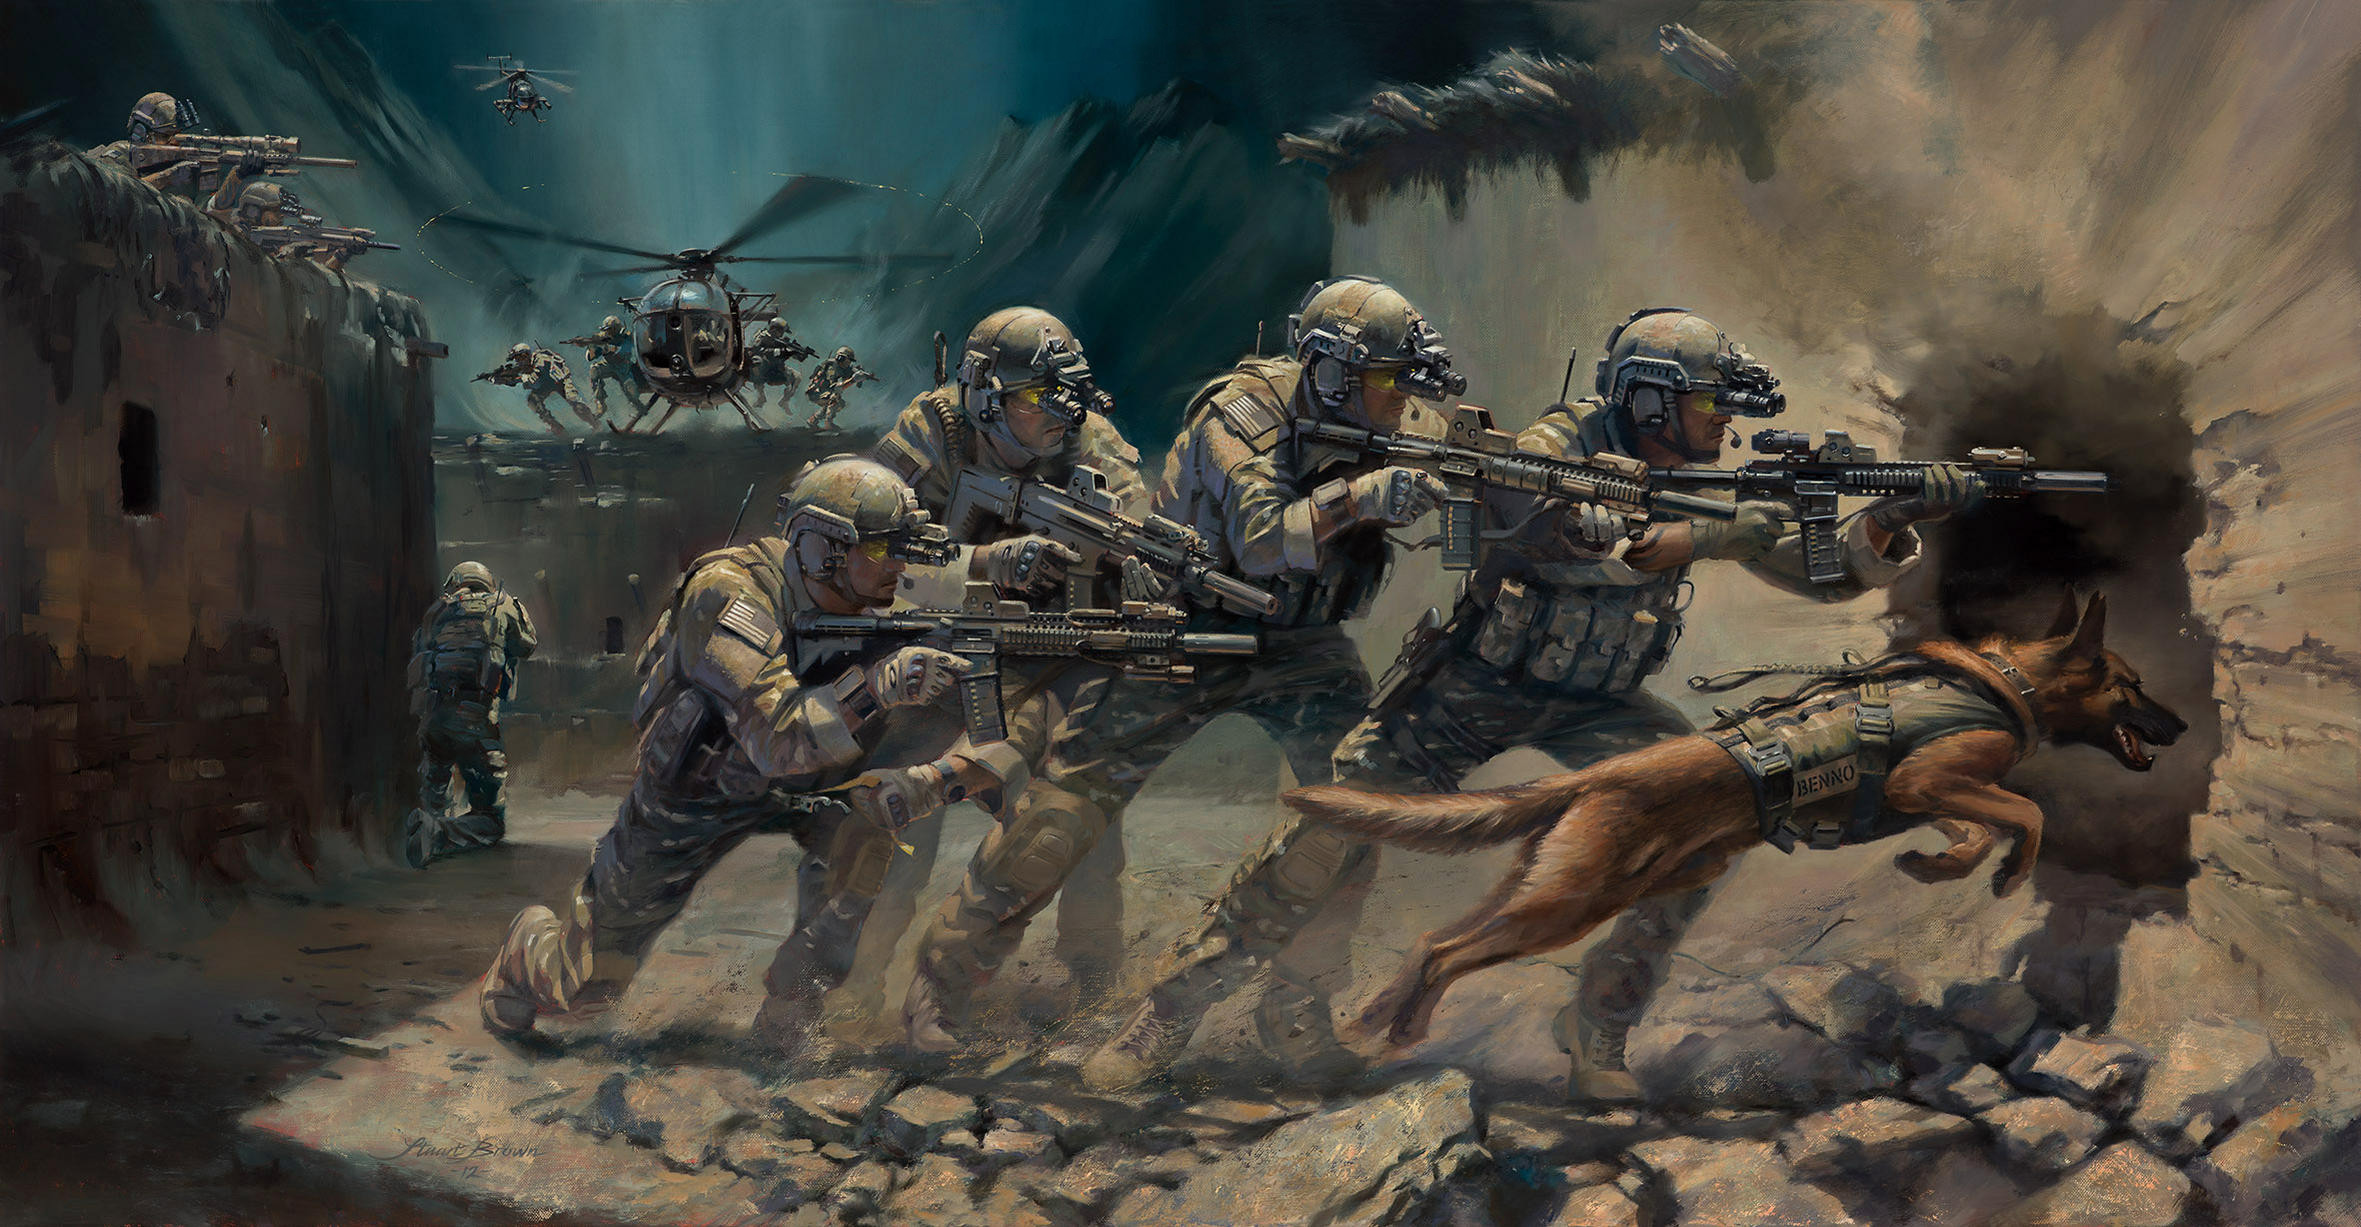 2361x1227 Download wallpaper art, soldiers, special forces, assault rifles, weapons,  equipment,